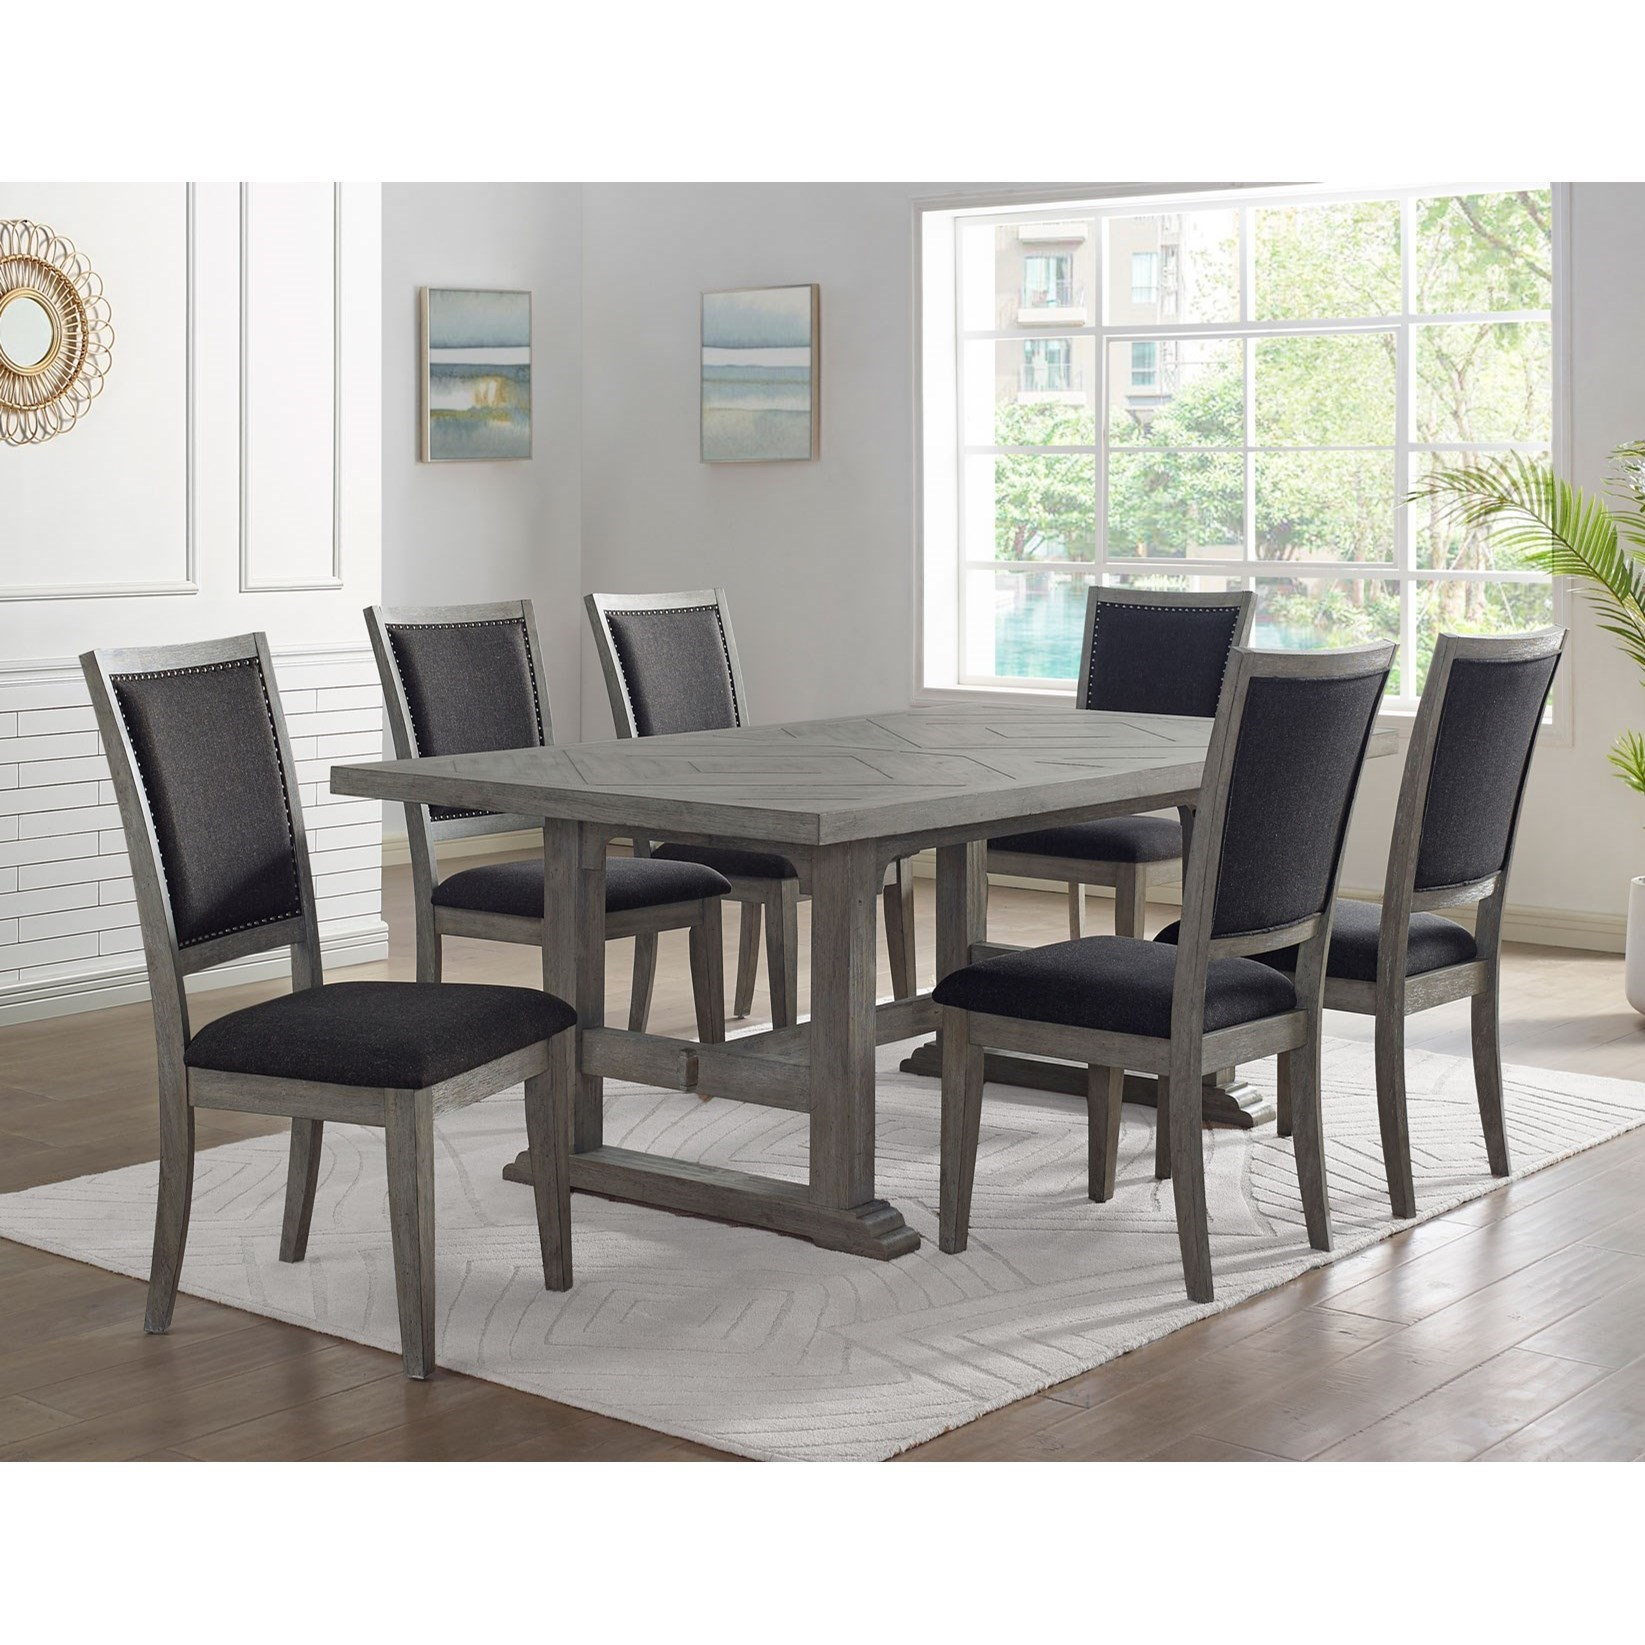 Whitford 7-Piece Dining Set by Vendor 3985 at Becker Furniture